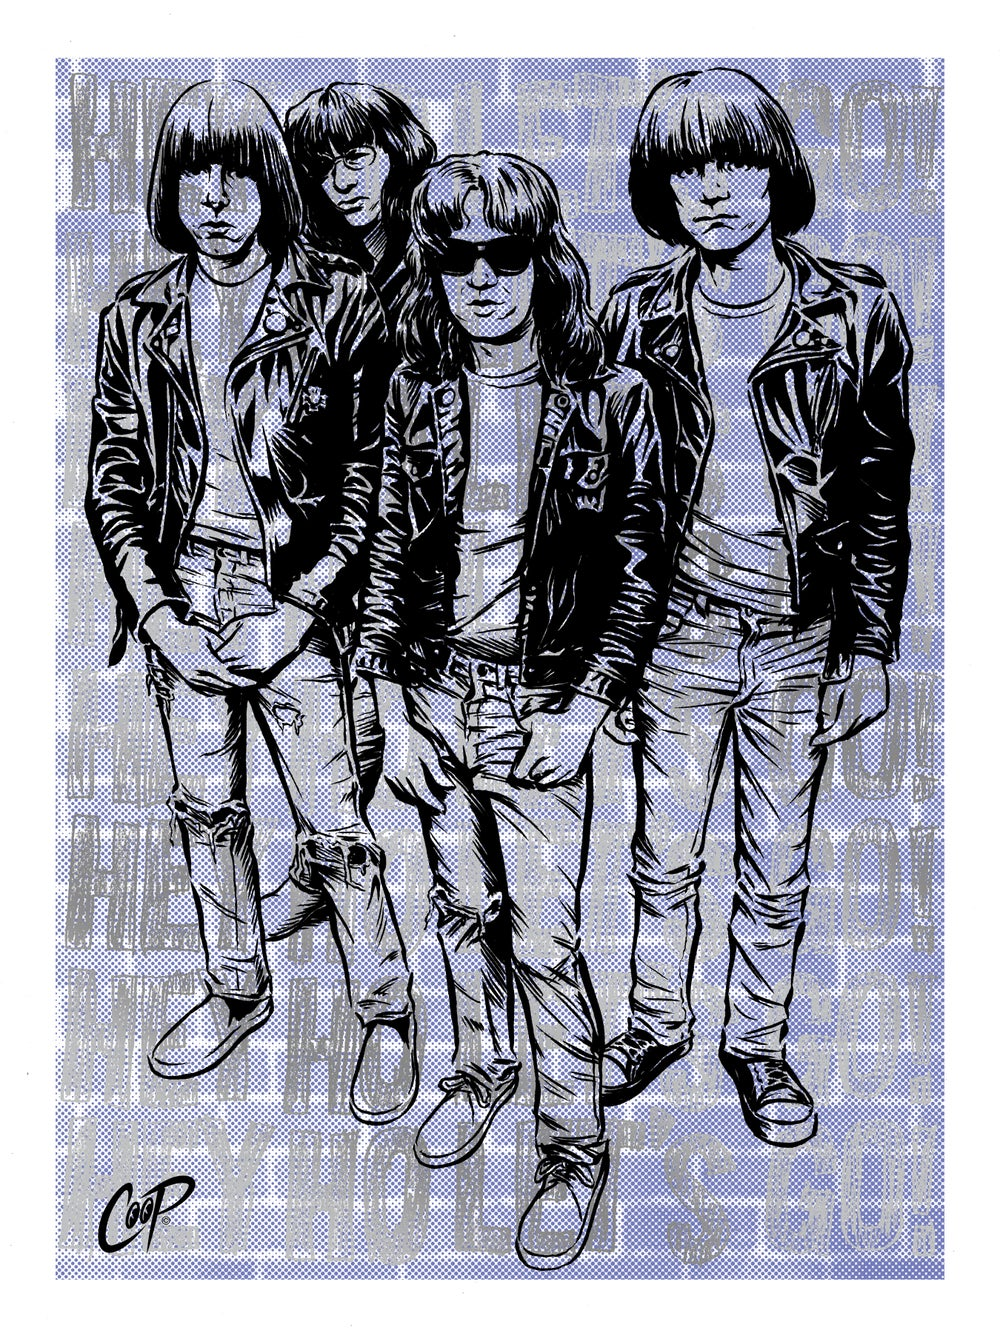 Image of HEY HO LET'S GO (Carbona Not Glue Edition) Silkscreen Print